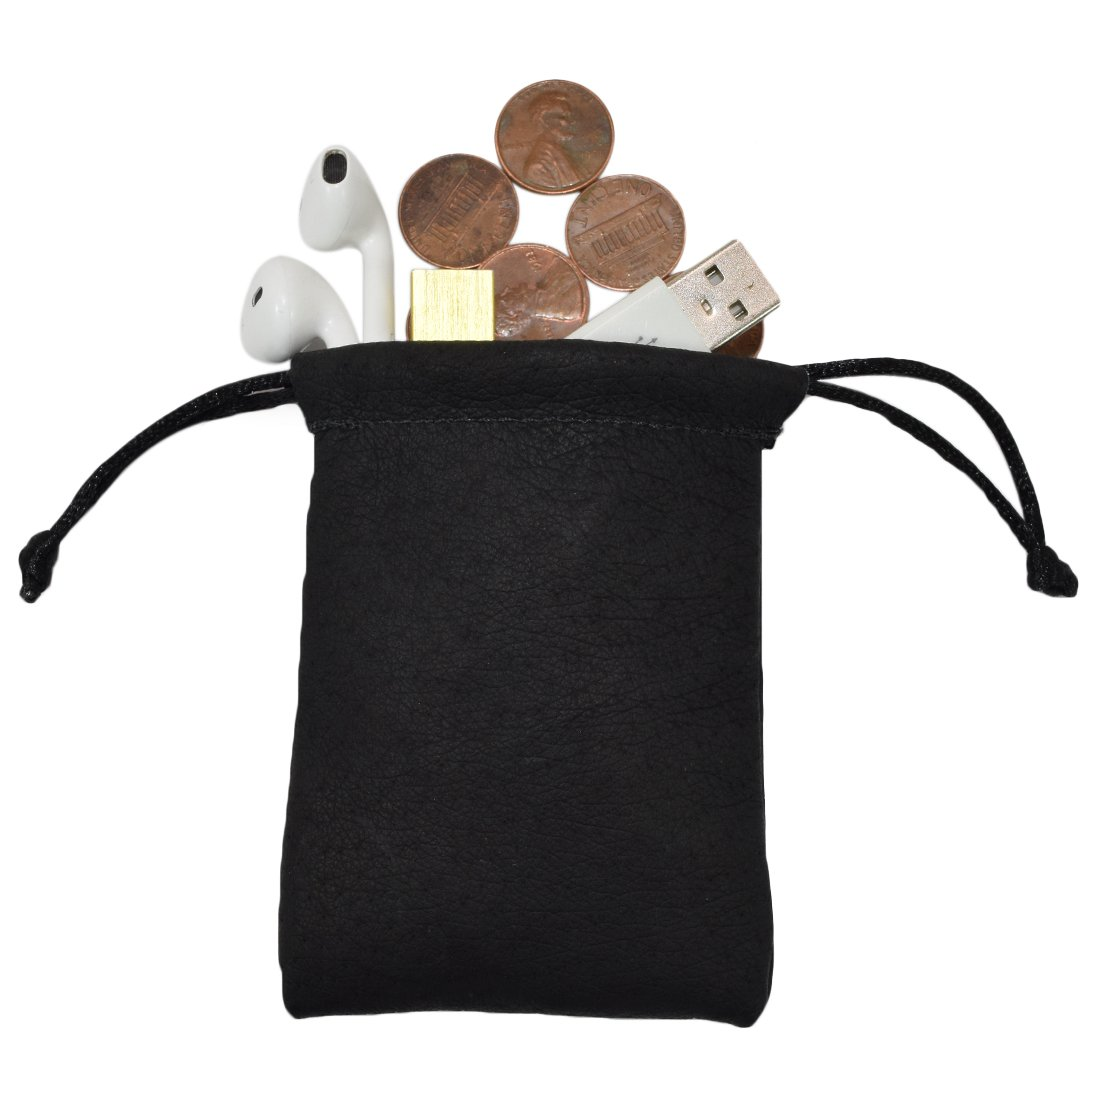 Sheepskin Coin/Heaphones/Valuables Travel Small Board Games Dice Pouch Handmade by Hide & Drink :: Black